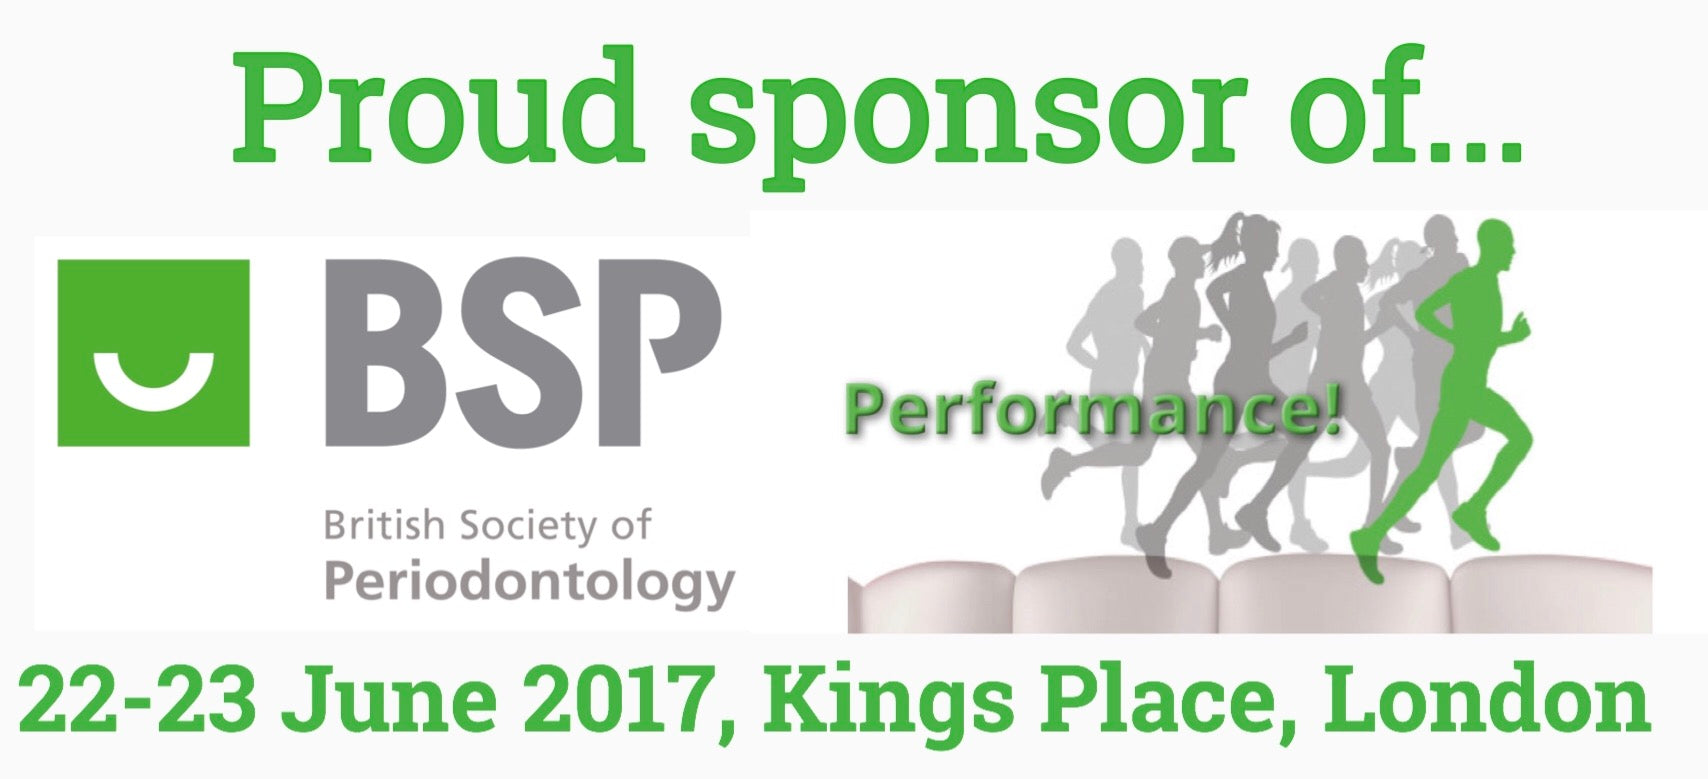 BSP Conference 2017 - British Society of Periodontology